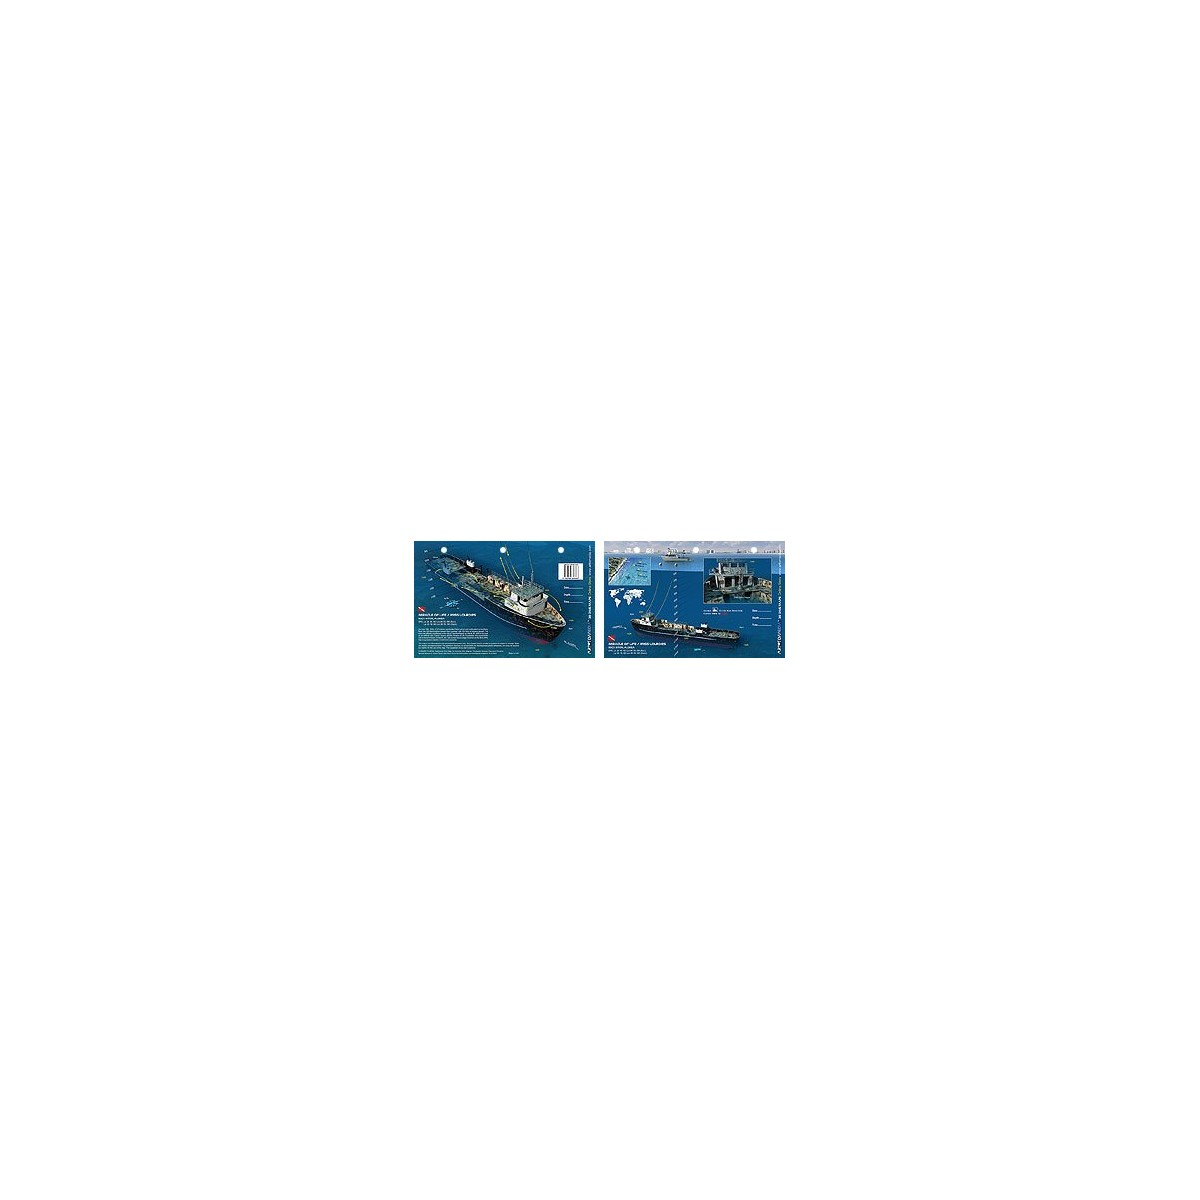 Miracle of Life in Fort Lauderdale, Florida (8.5 x 5.5 Inches) - New Art to Media Underwater Waterproof 3D Dive Site Map